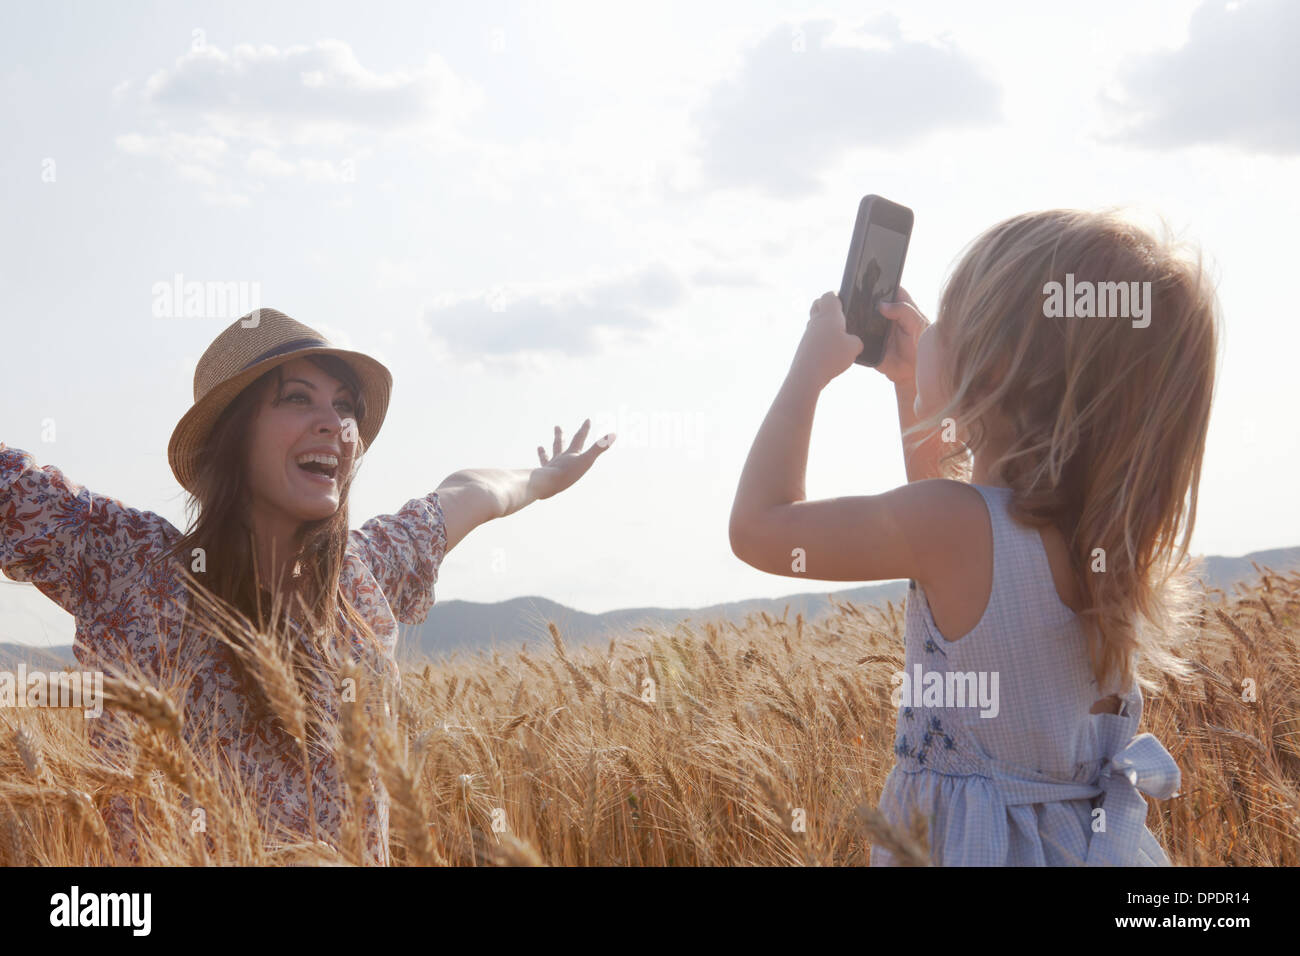 Girl taking photograph of mother in wheat field with arms open - Stock Image